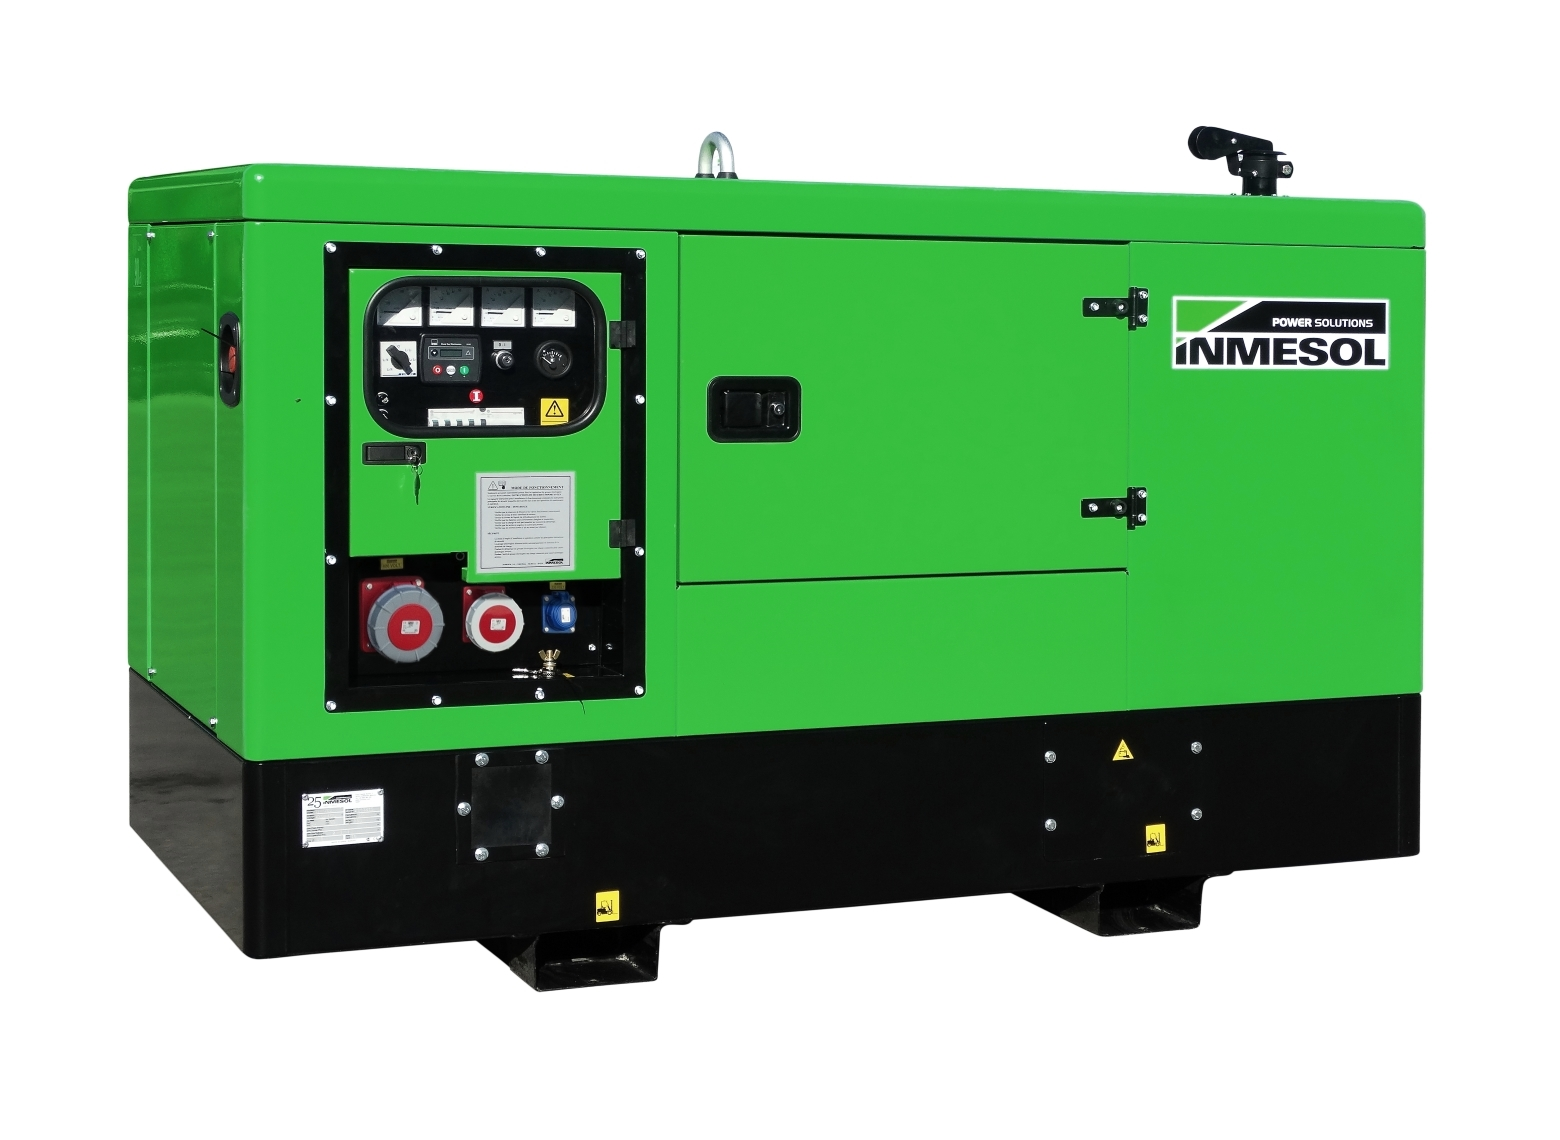 Generator with manual control panel.IK-033 - KOHLER - KDI2504TM30 - 1.500 R.P.M. | 50 Hz